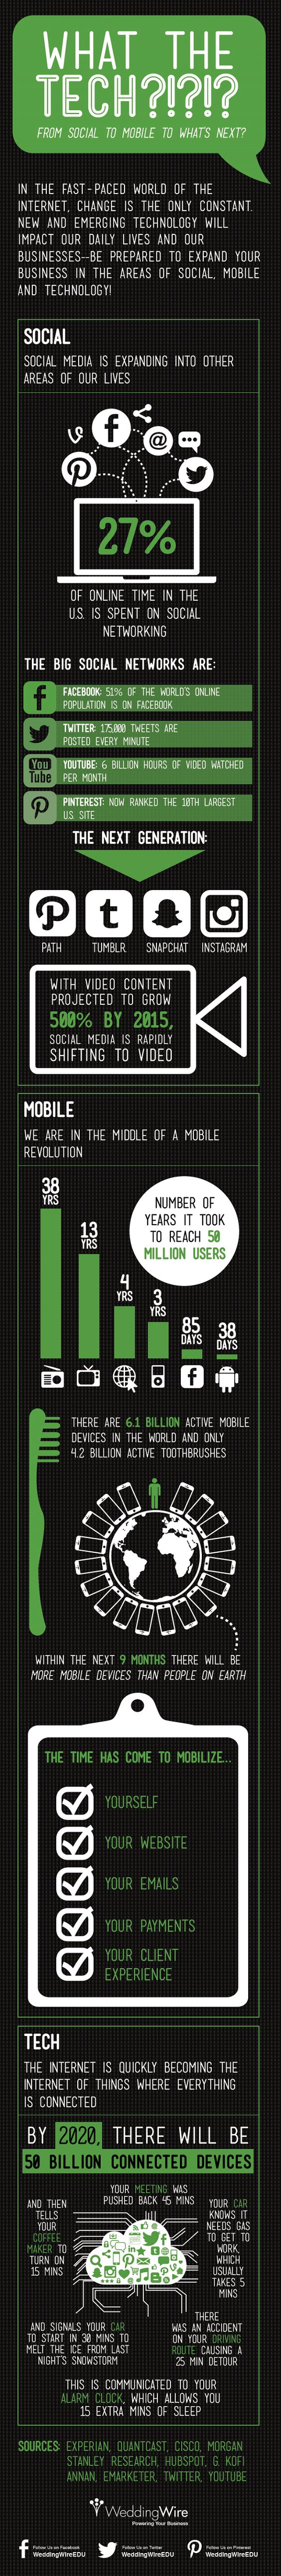 What the Tech?! Social Media, #Mobile & #Tech Trends and Stats - #infographic  #SocialMedia #TechTrends #technology